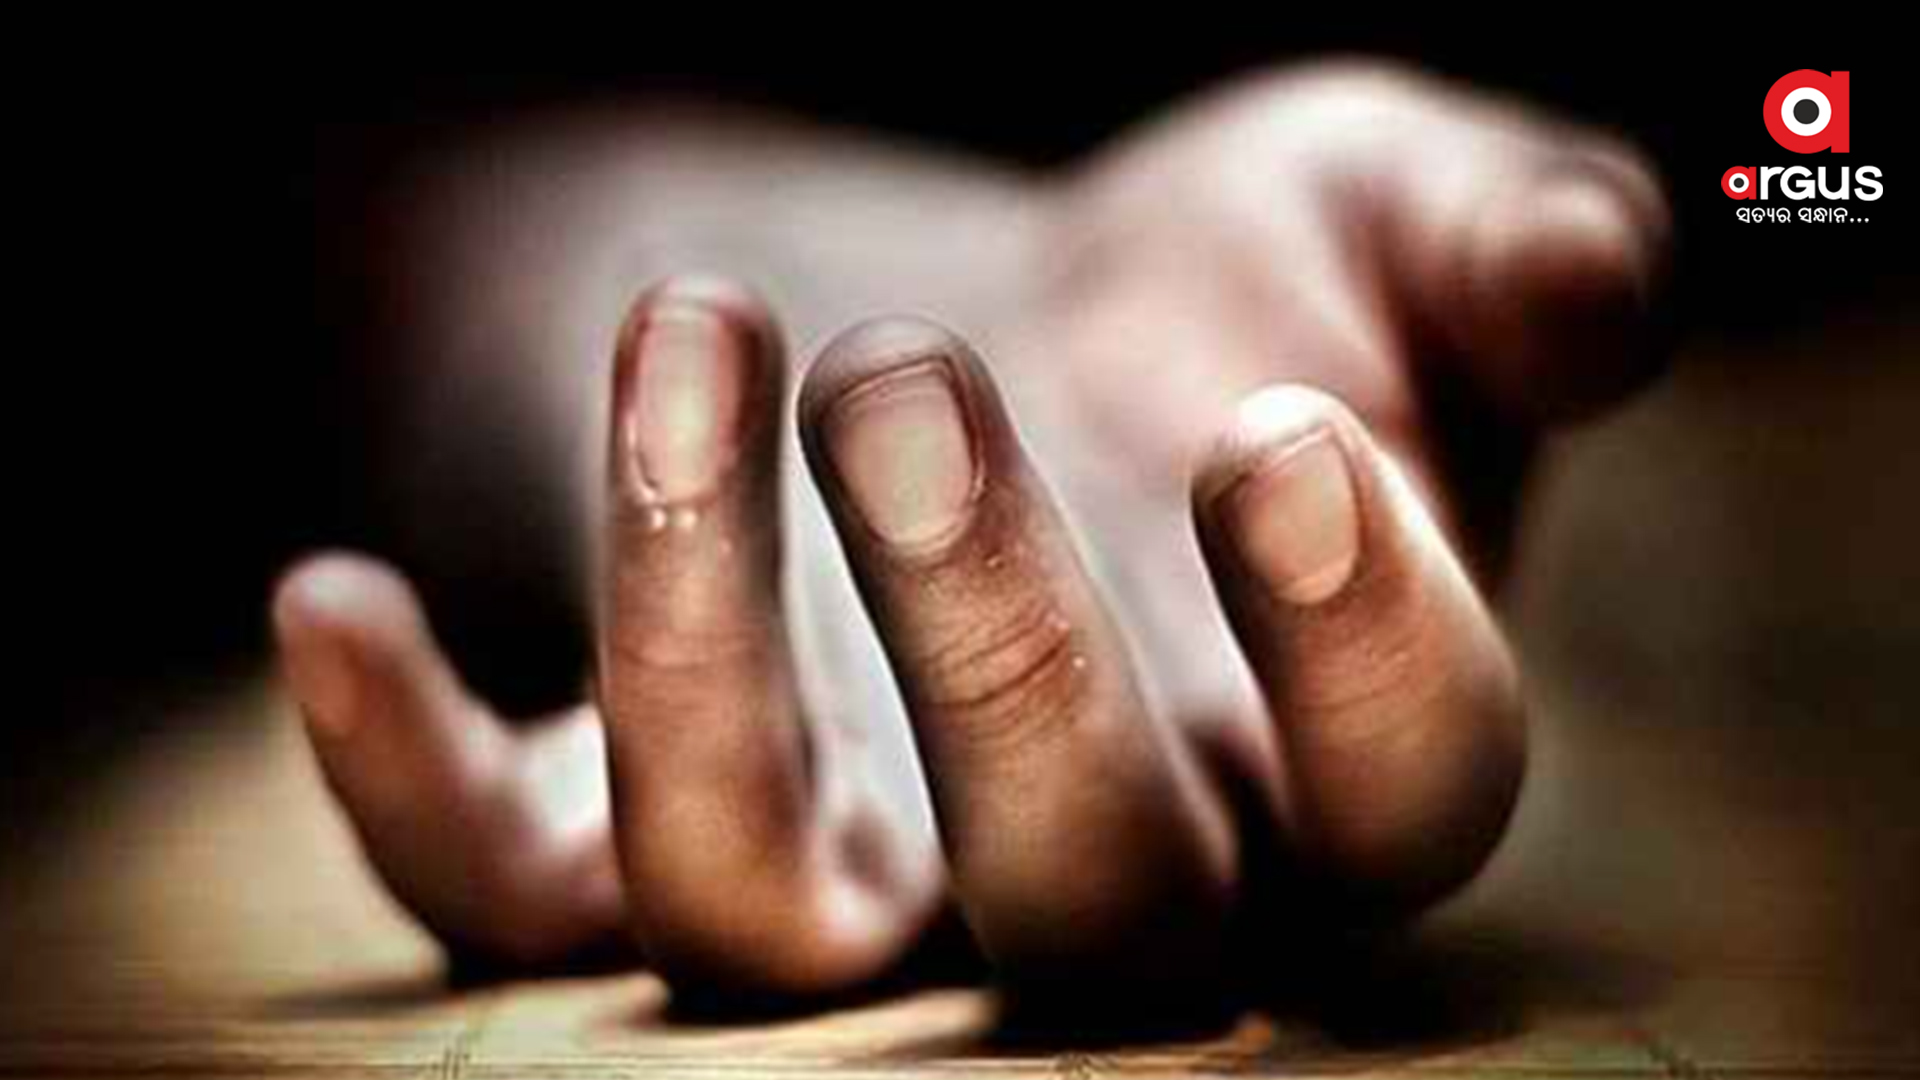 Youth hacked to death in Bhubaneswar